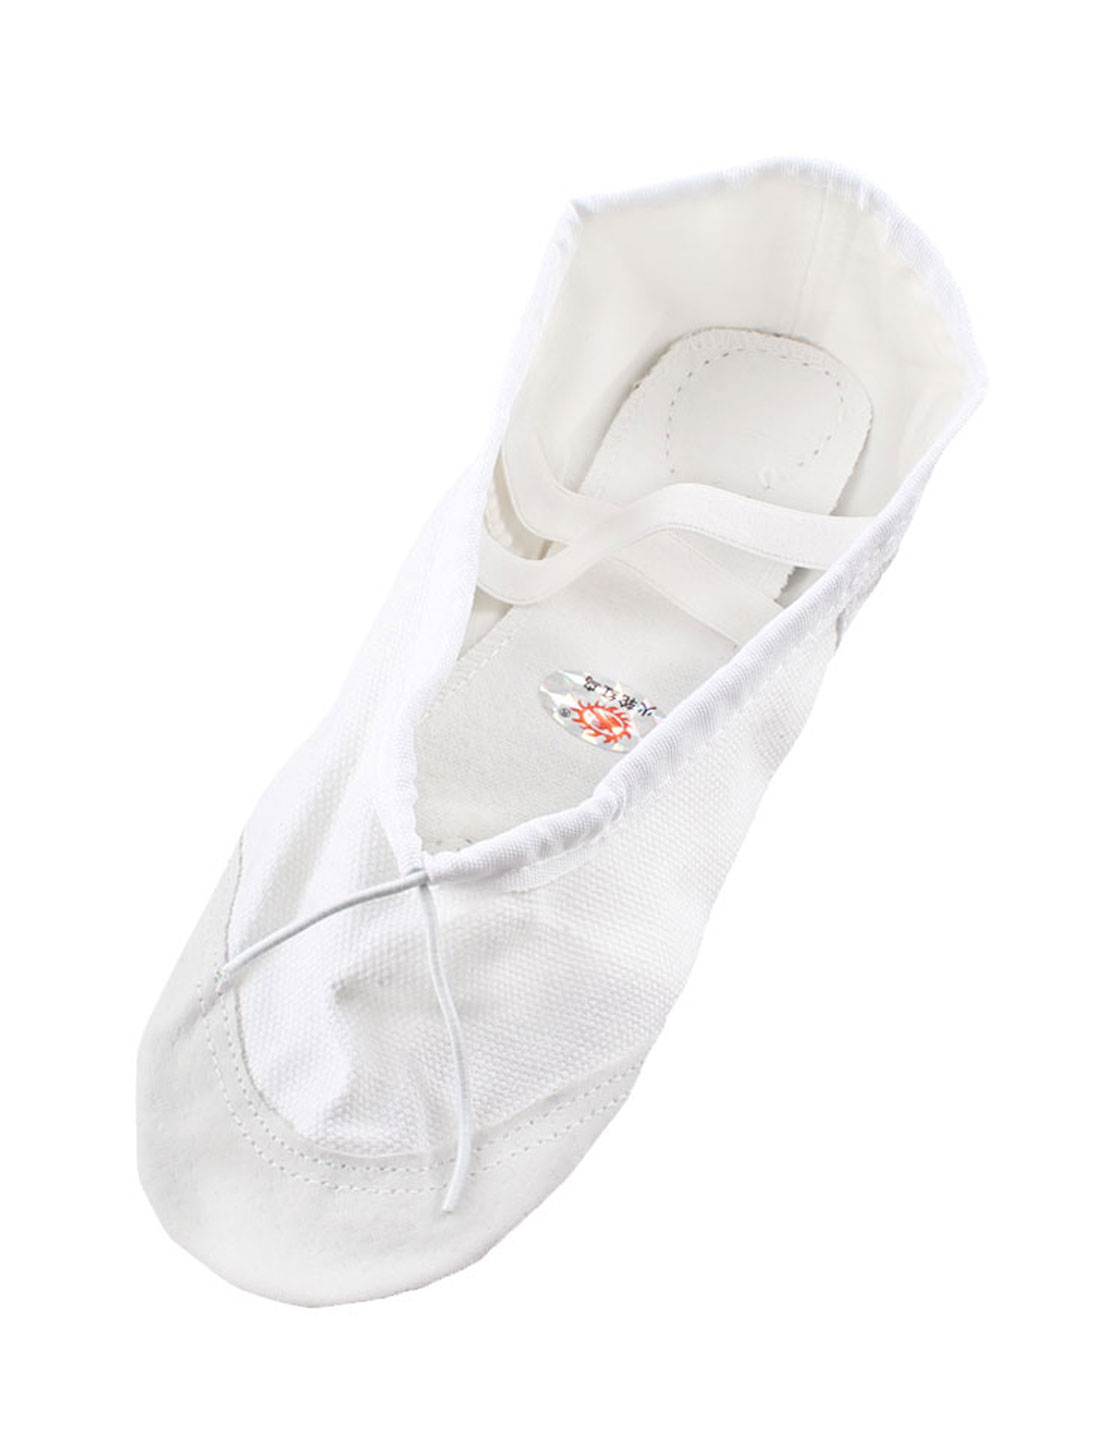 Ladies Faux Leather Sole Elastic Trim Dance Ballet Training Shoes White Pair